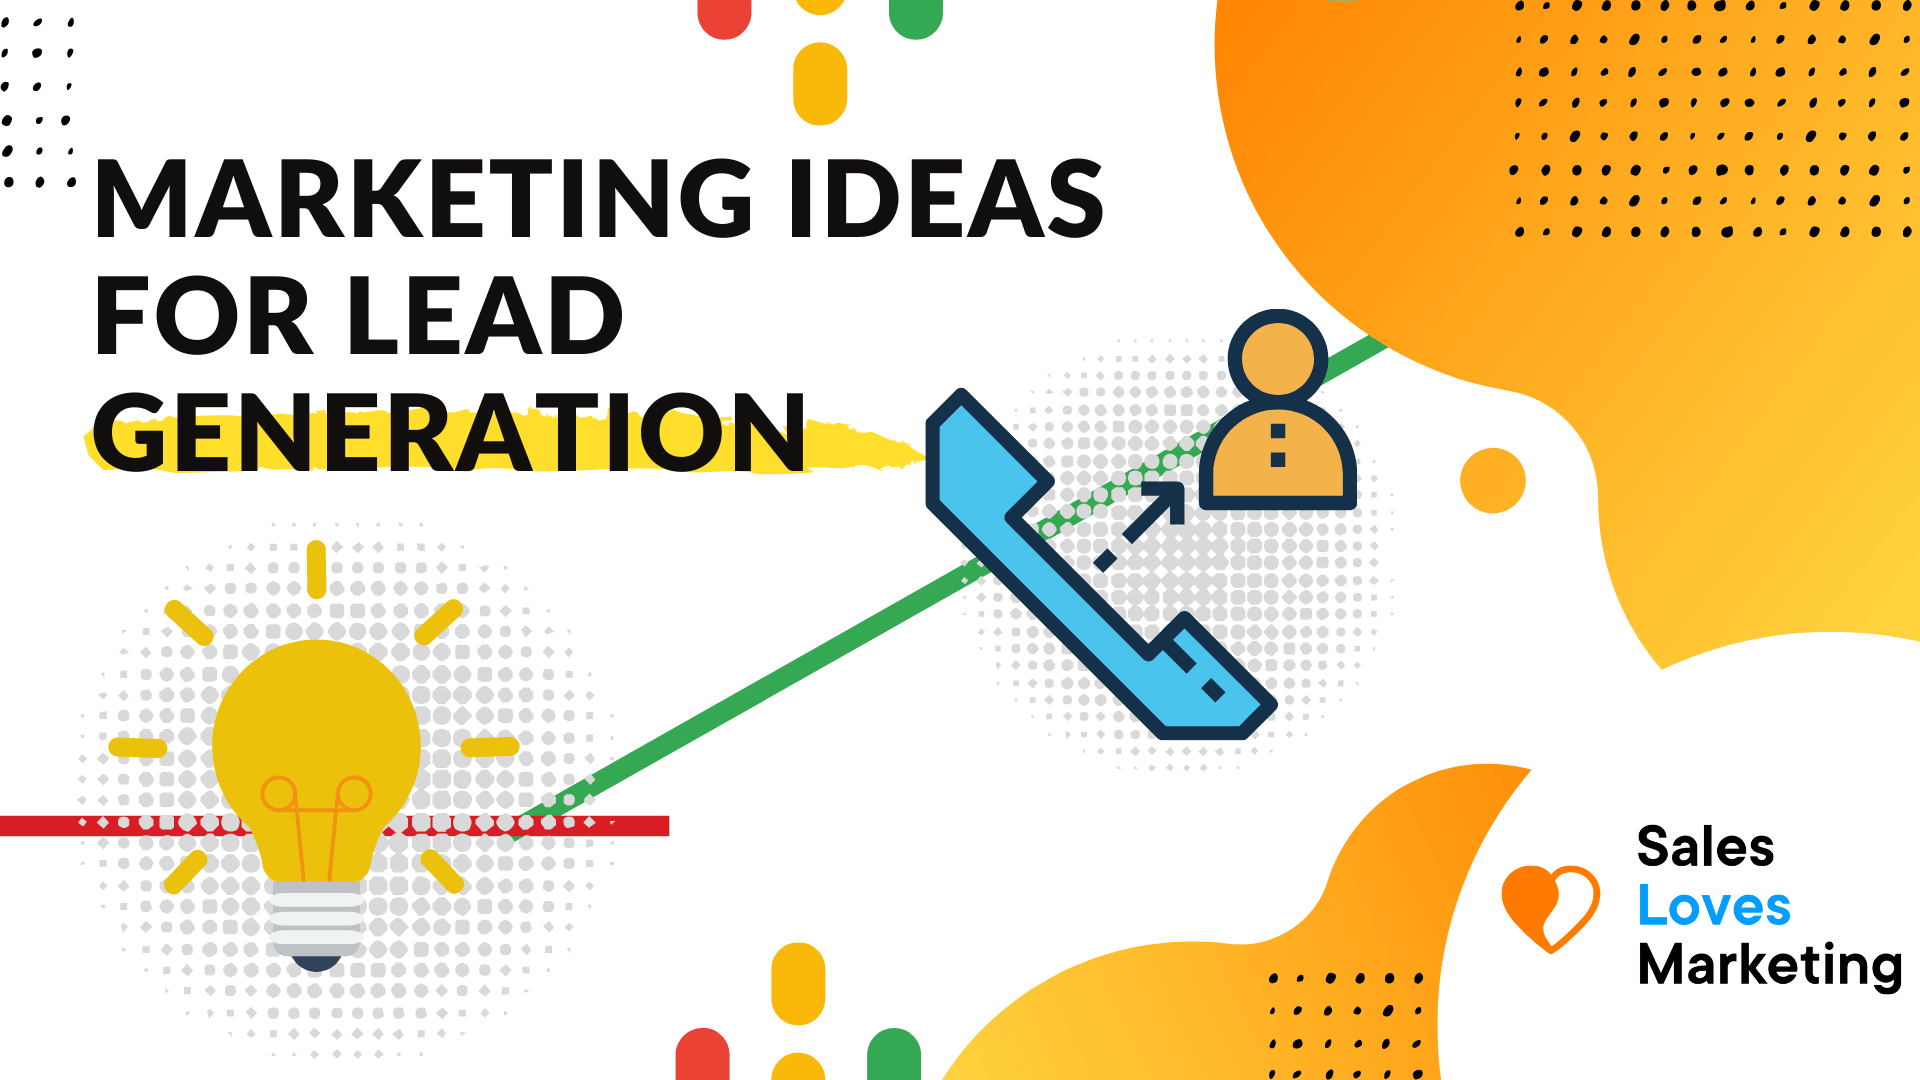 Marketing ideas about Lead Generation